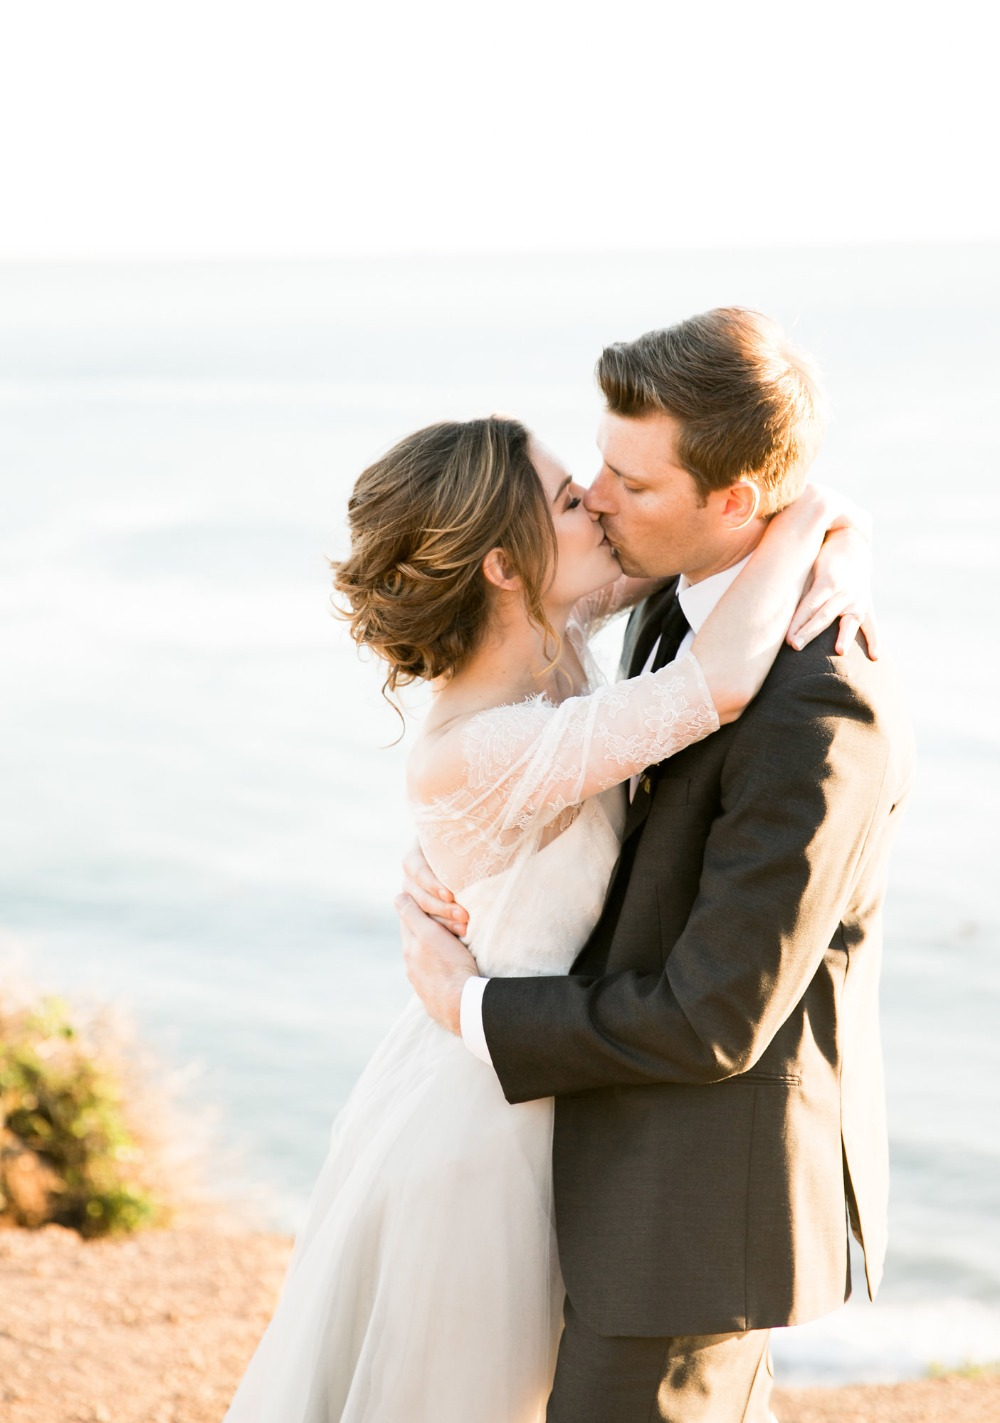 It's All About Love and Support At This Beach Wedding Shoot